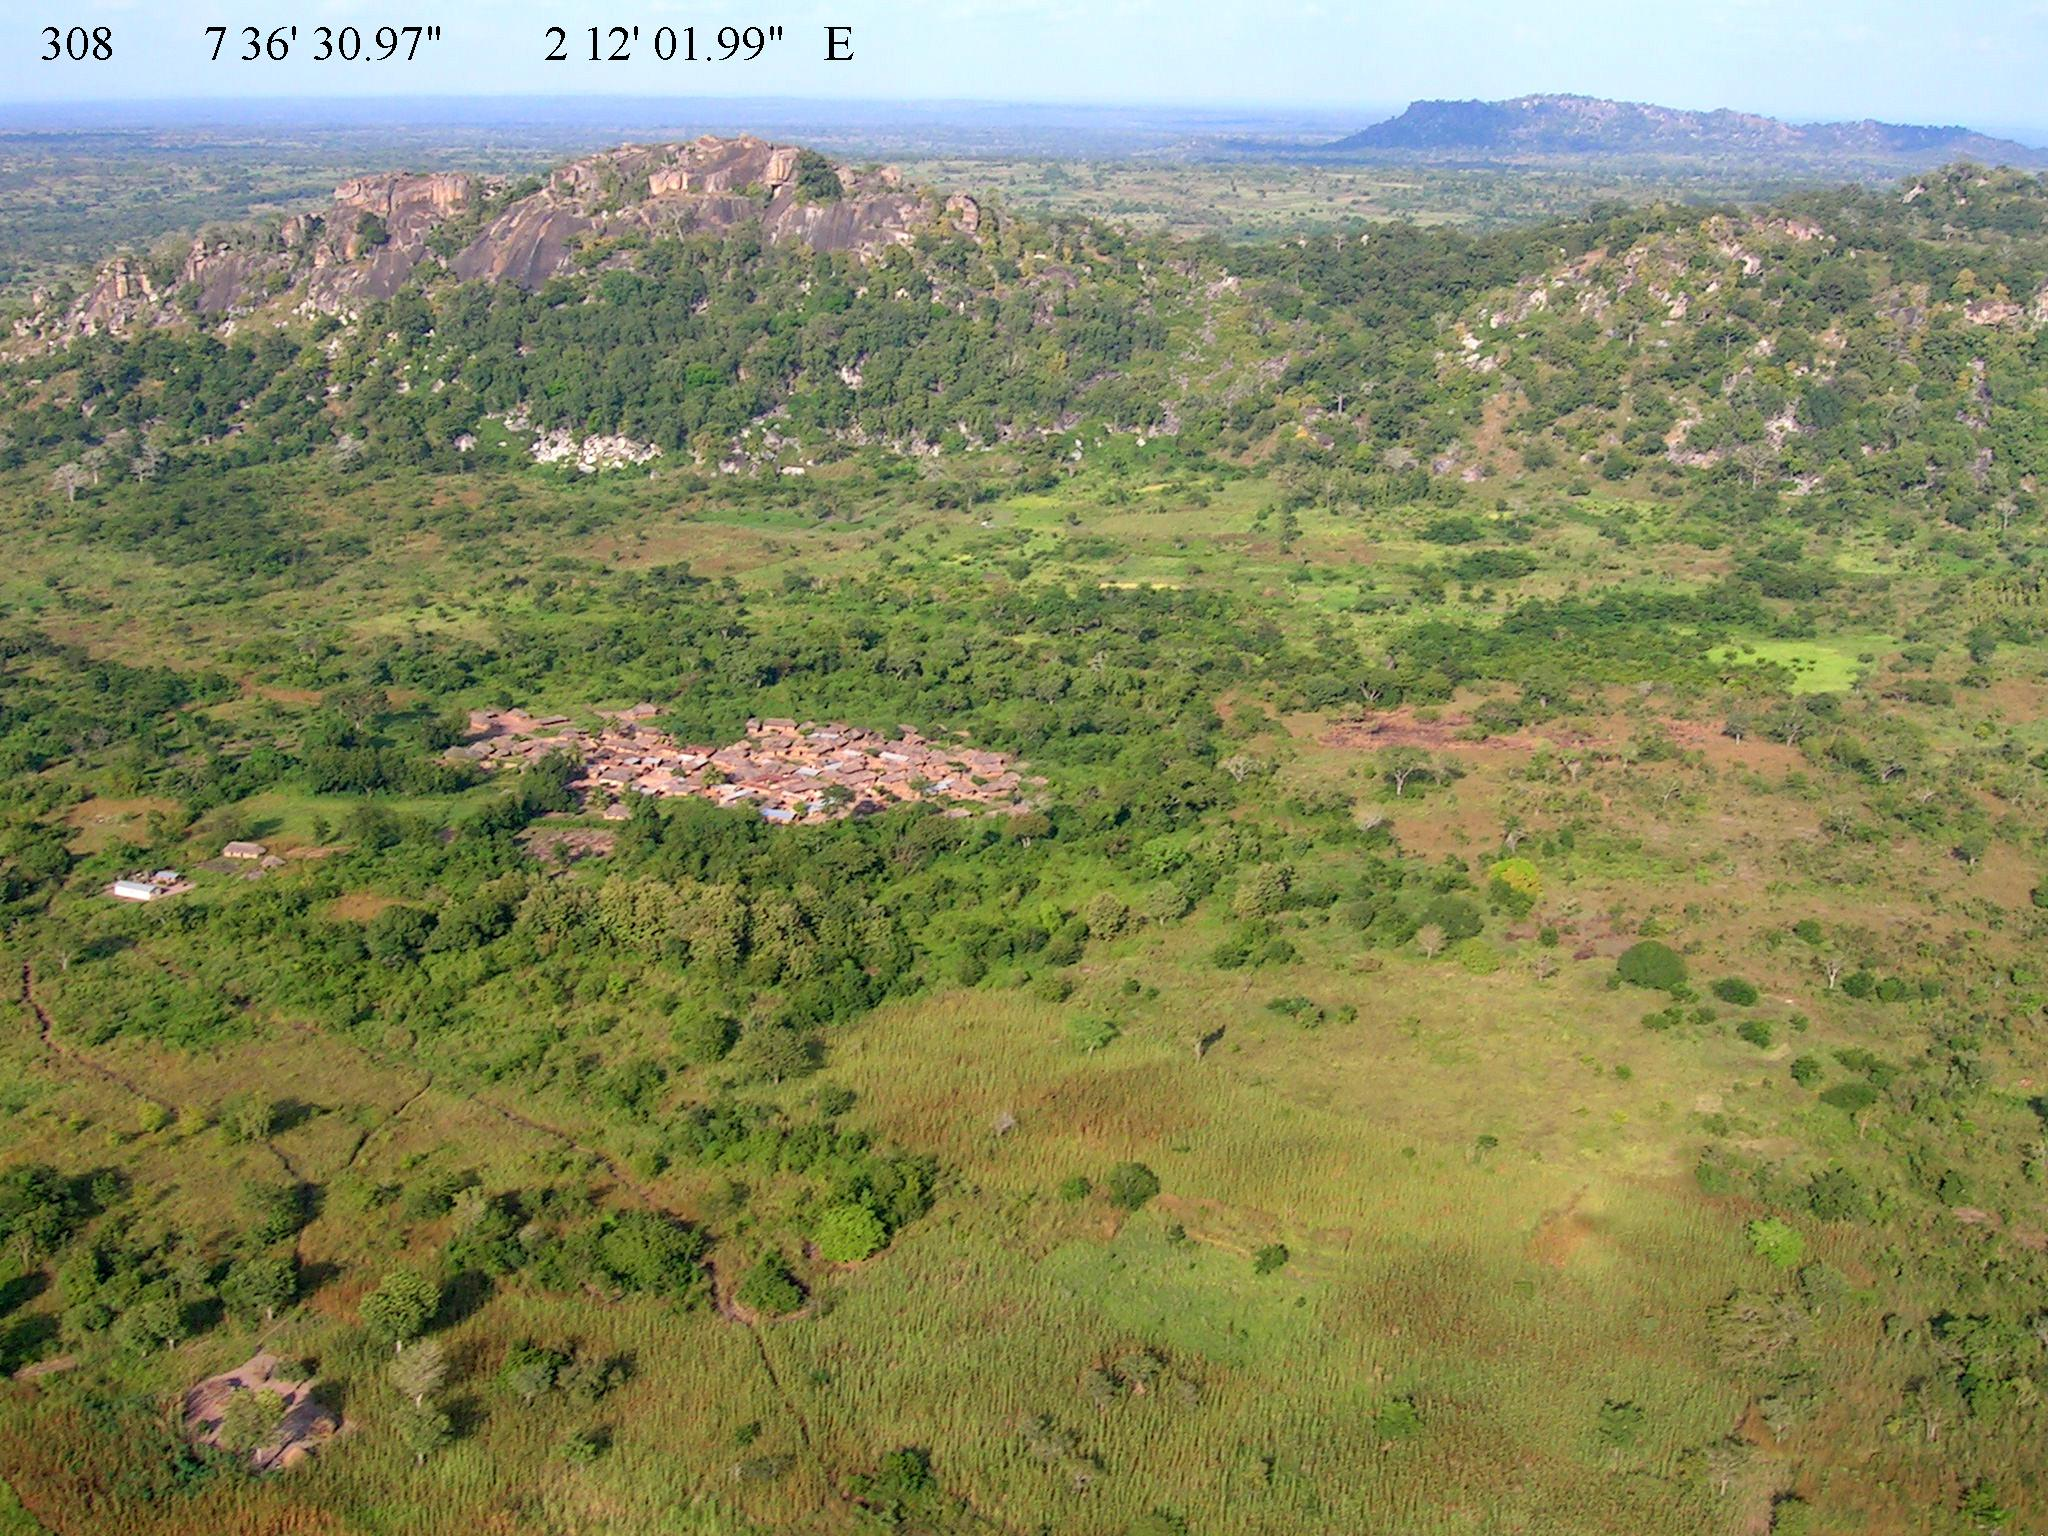 Aerial view of rural settlements in southern Benin  © Gray Tappan/USGS